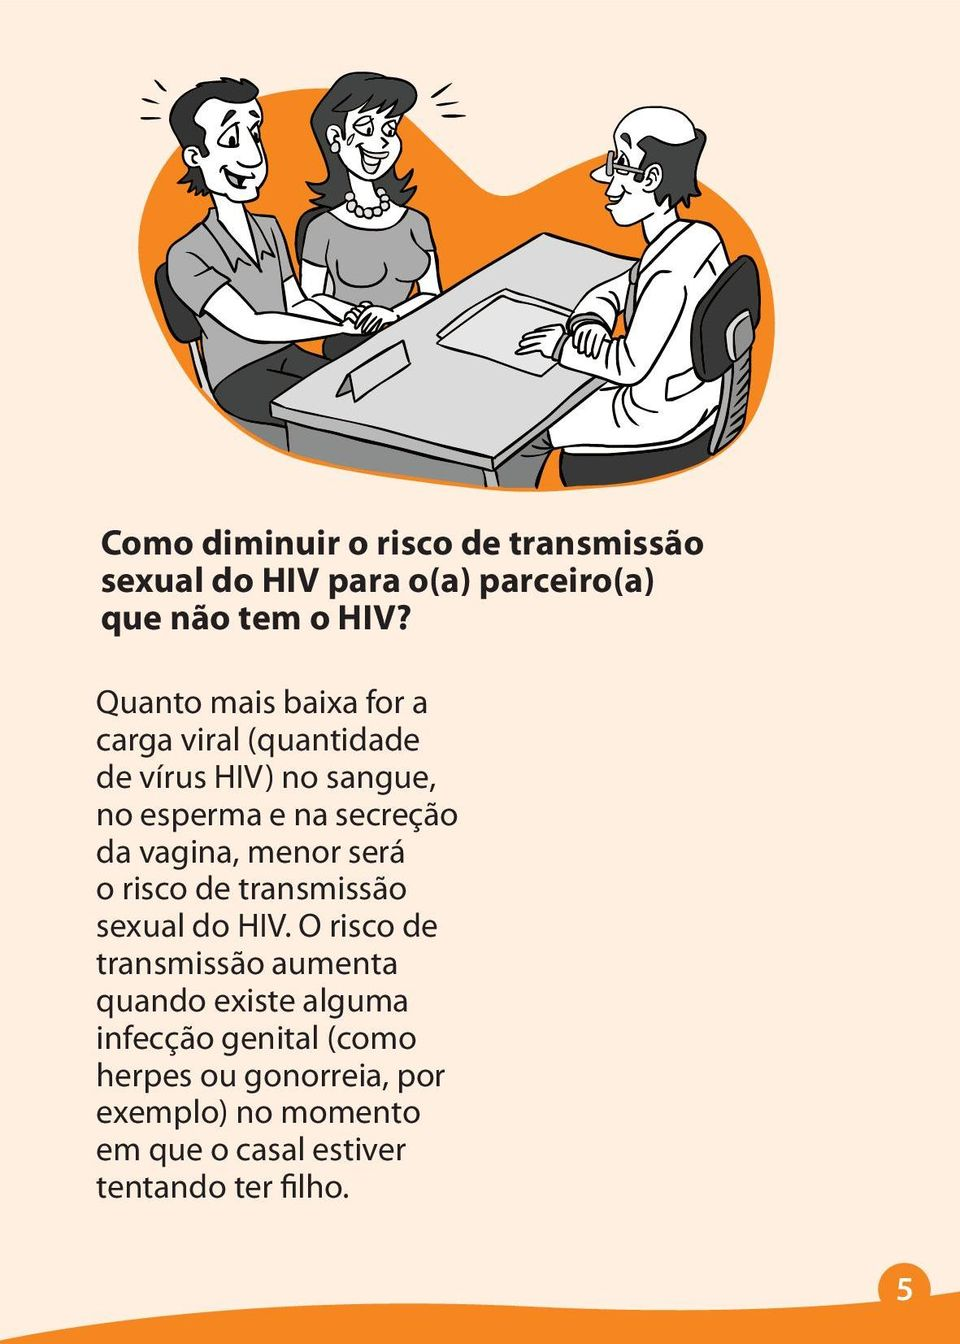 vagina, menor será o risco de transmissão sexual do HIV.